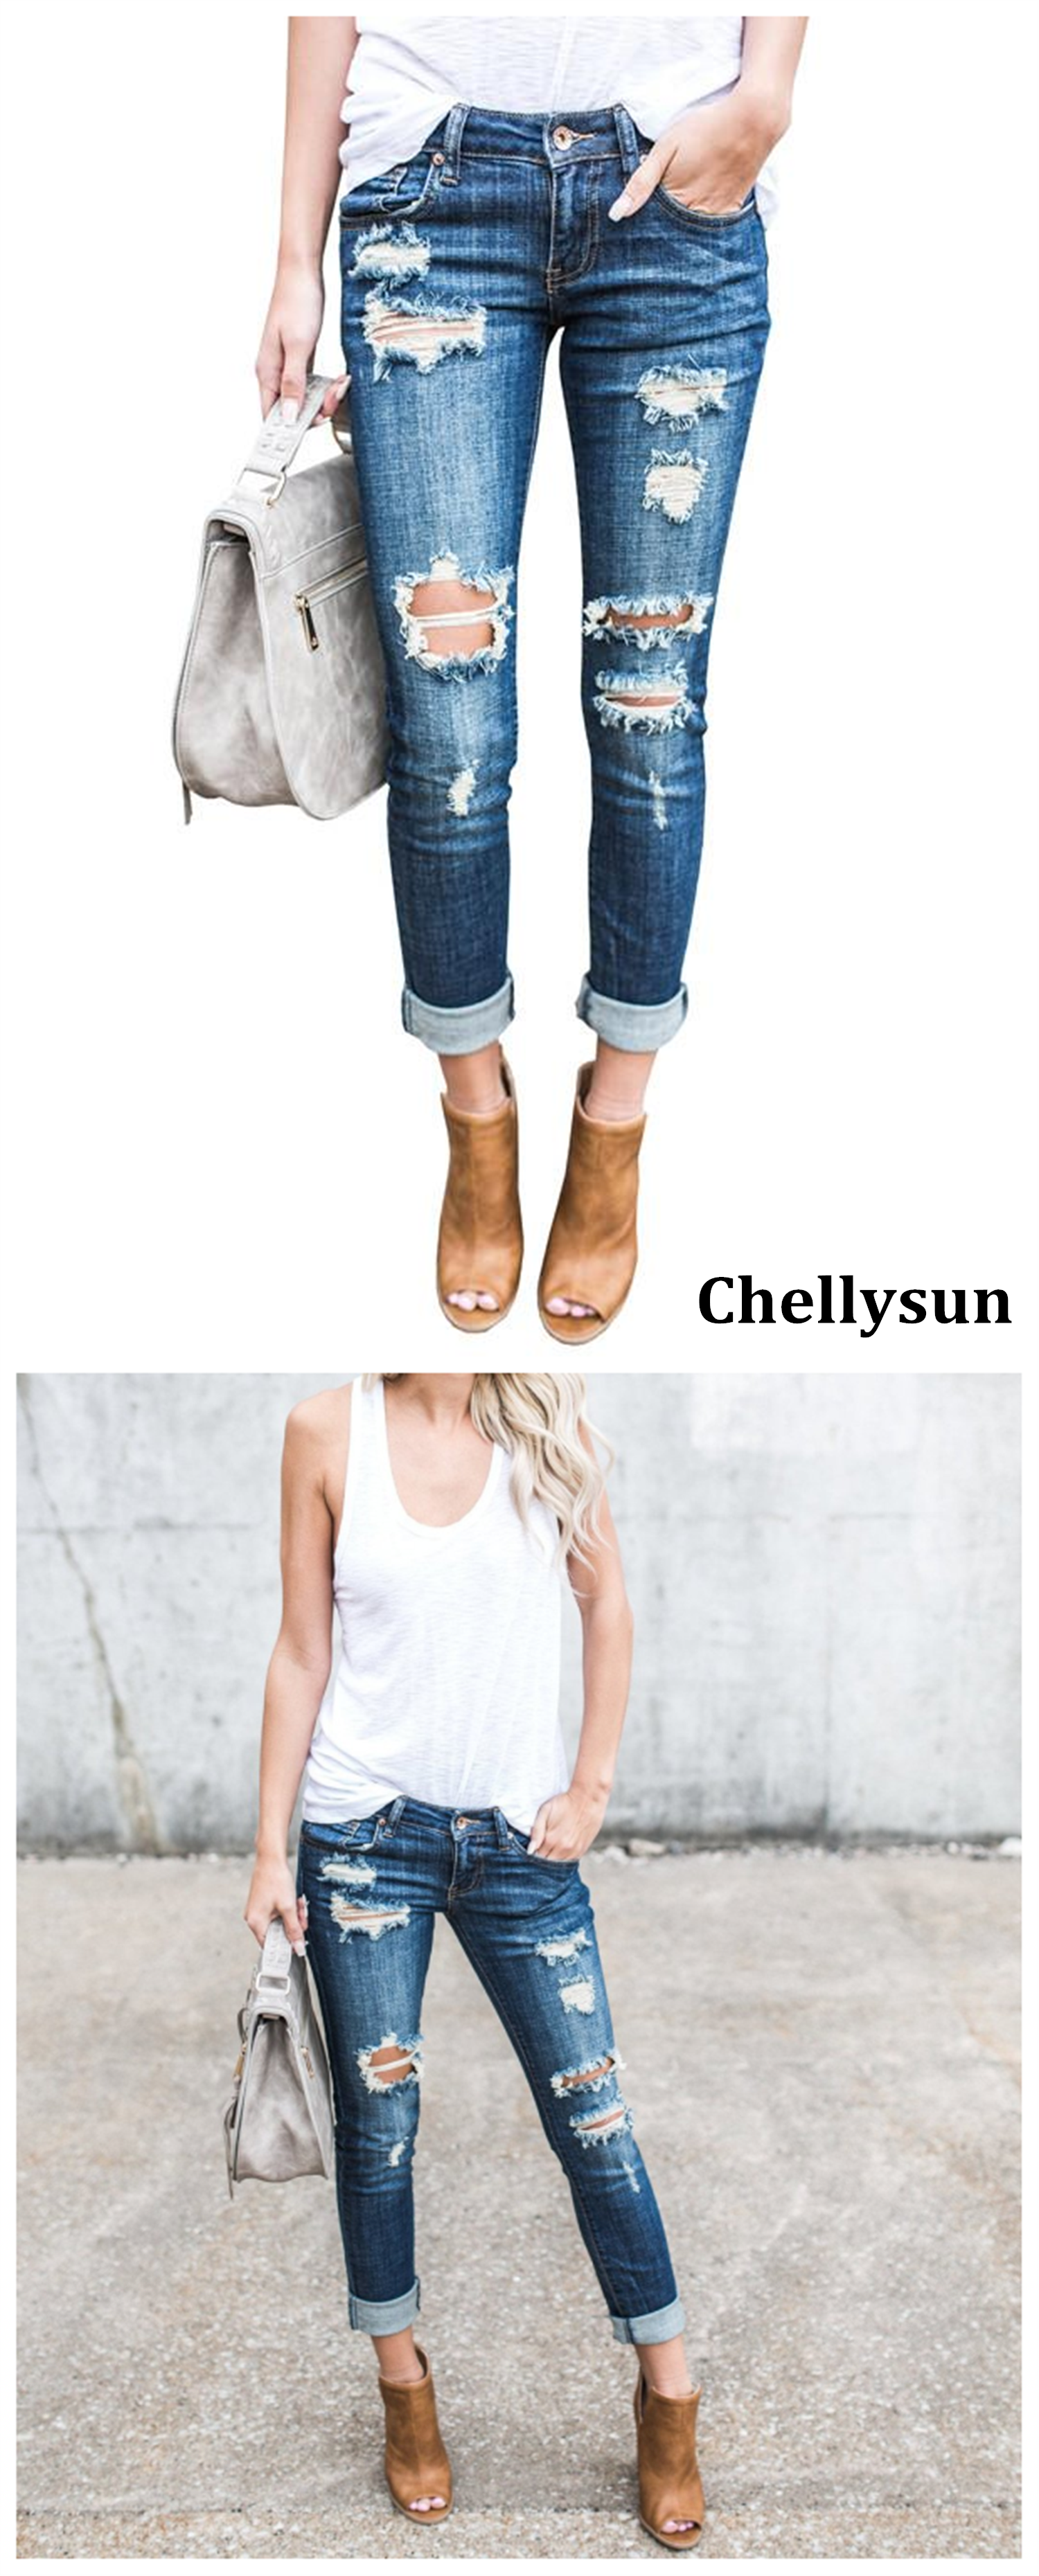 b803deaf06 Best ripped skinny jeans DIY boyfriend recycle bootcut jeans for curves women  high waist upcycling denim mom flare jeans Chellysun Hole Jeans #jeans # denim ...